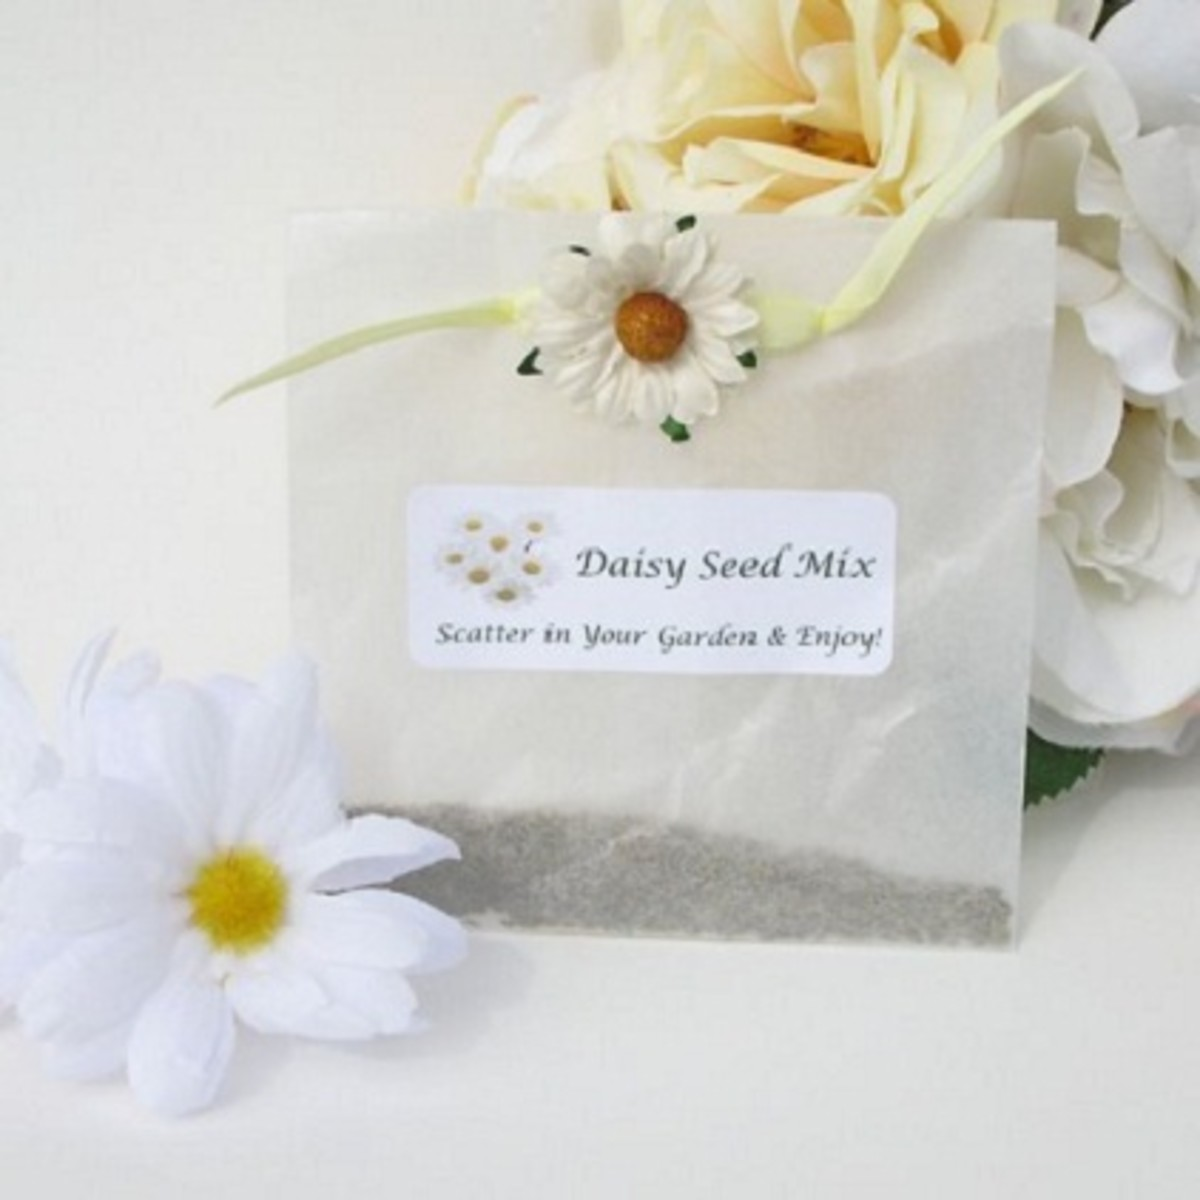 Buy daisy seeds in bulk and package them to give to your guests. Once planted, they will remind them of your special day for years to come